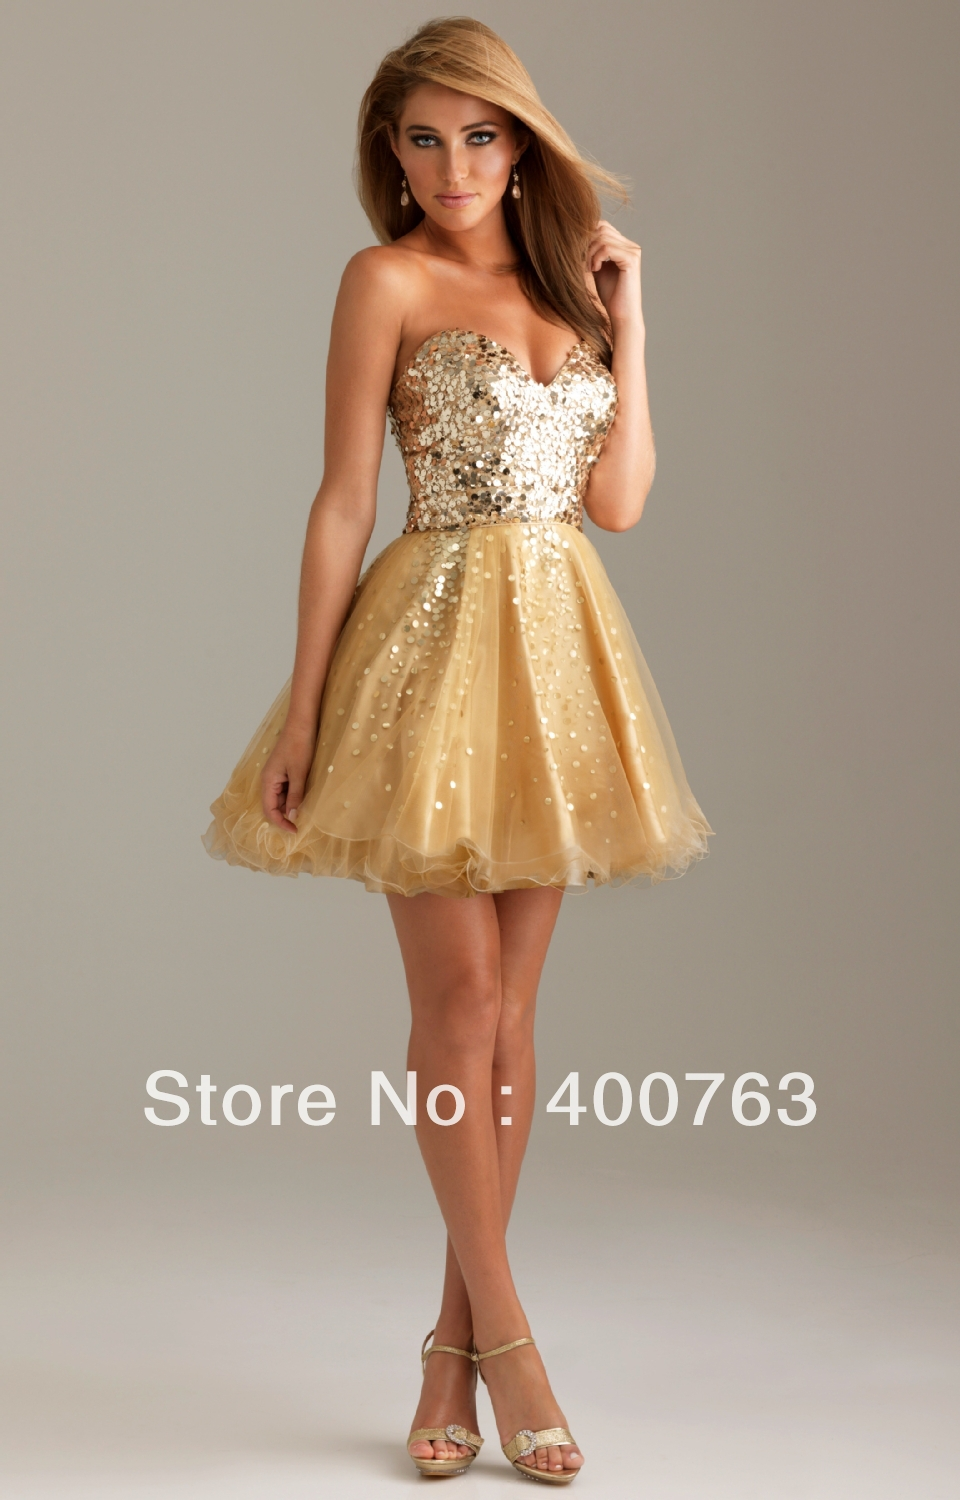 Formal Dresses For Juniors With Sequins | Shopping Guide